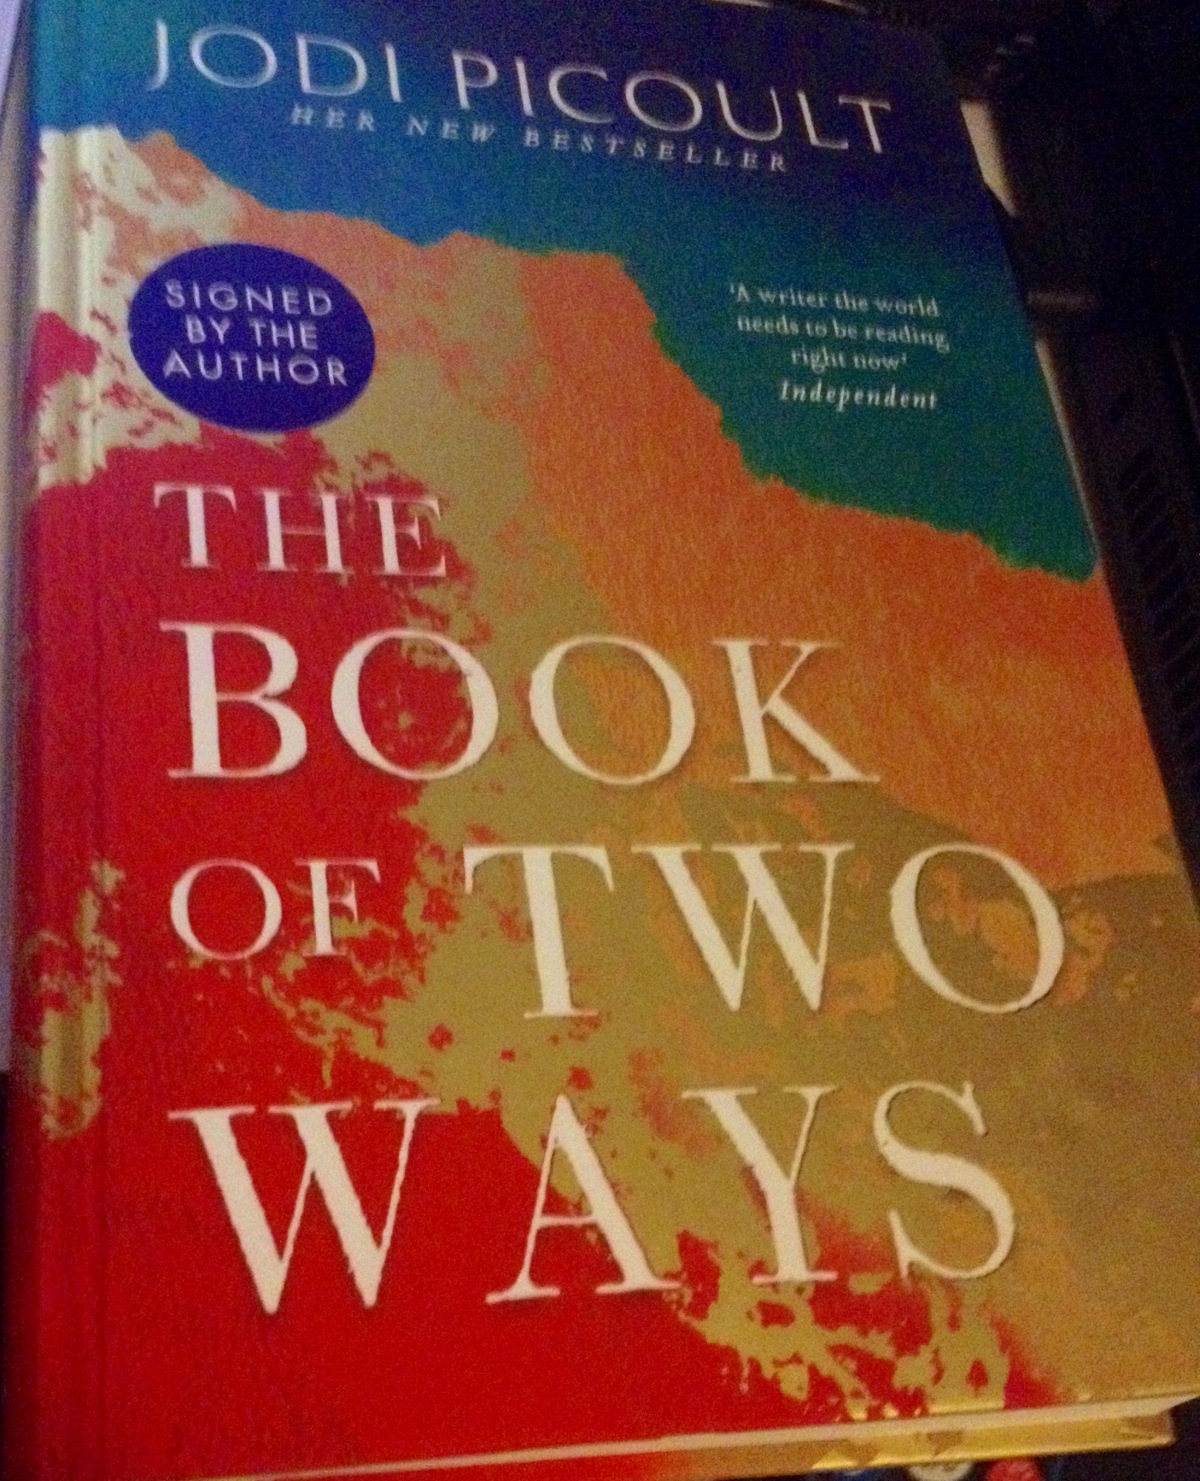 Sunday with a Sassy Shopaholic: The Book of Two Ways by Jodi Picoult (signed by theauthor).